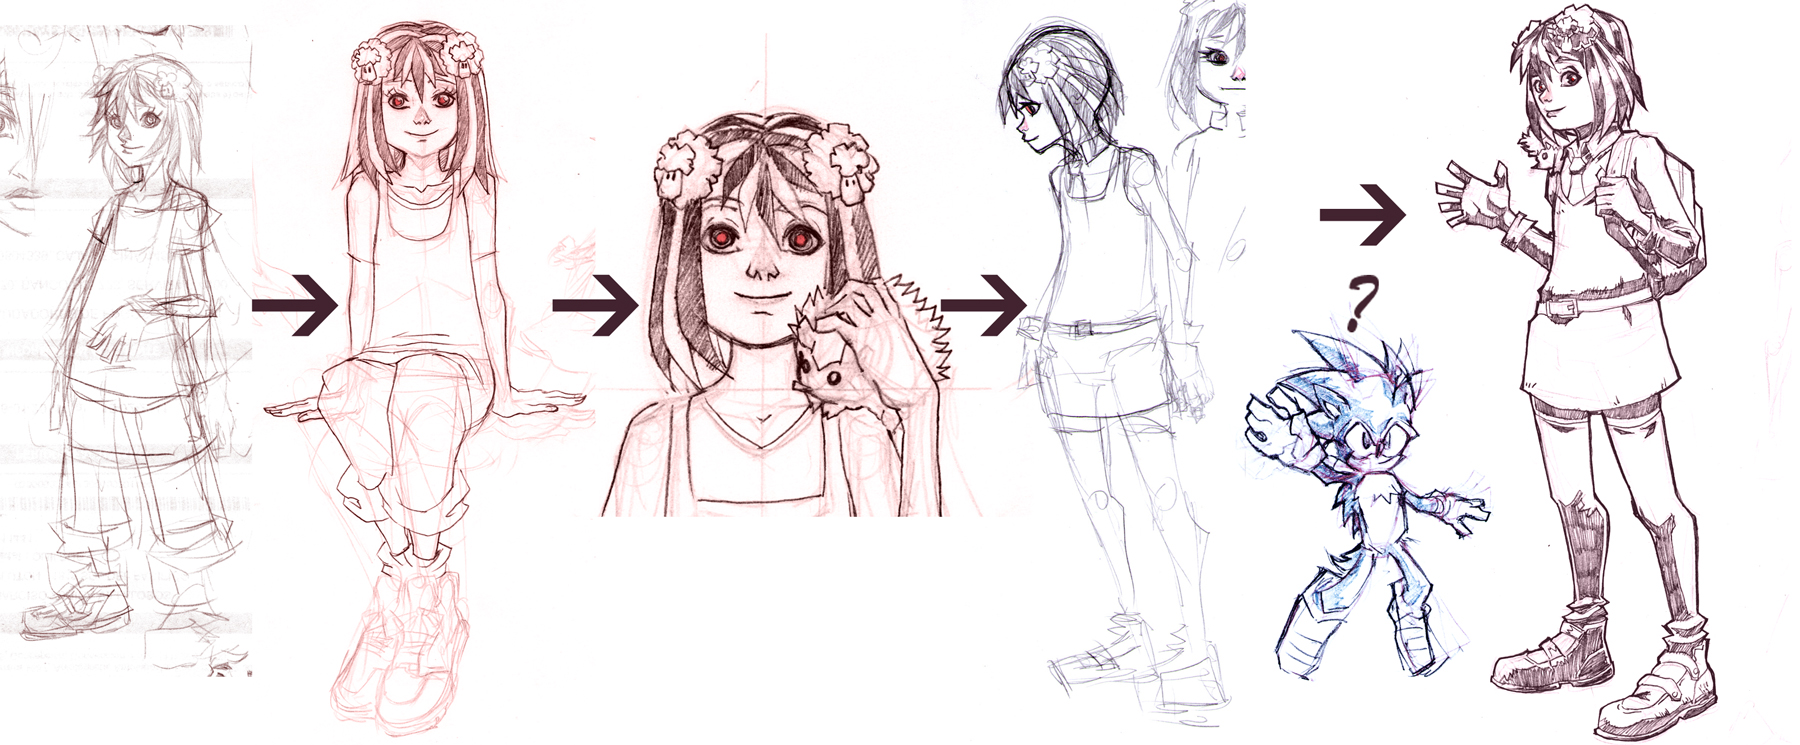 A very old design of    Paloma   . Back then, the story was going to start before the city was devastated, when Paloma was still a normal student. Later, I changed the script so the story would start with Paloma already trying to survive in a dying city.